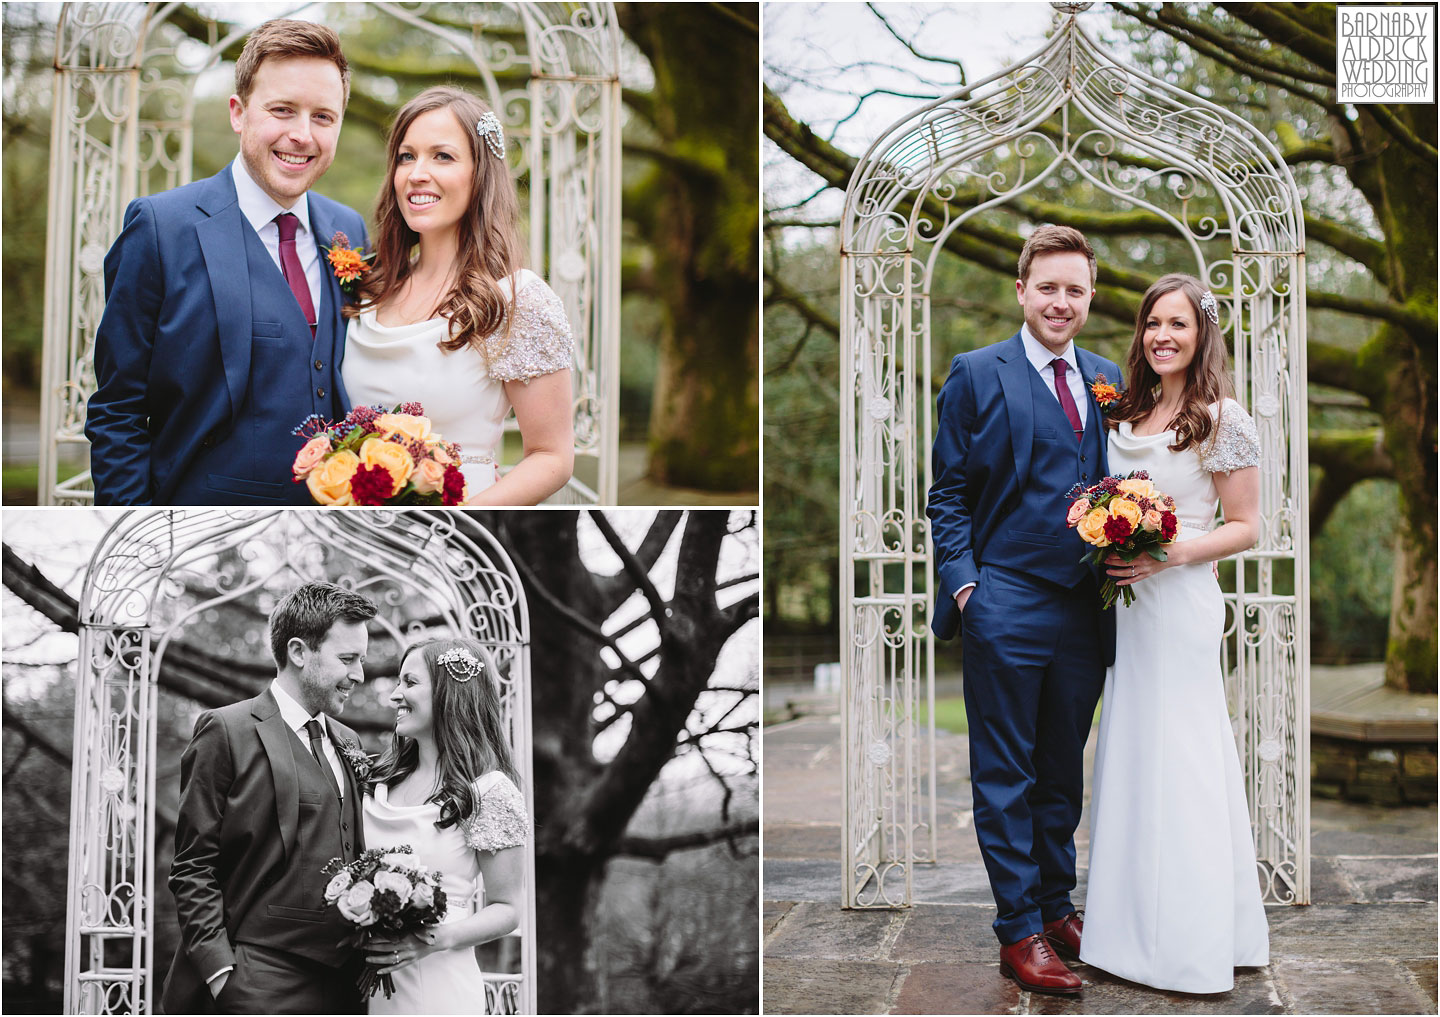 Wedding couple portraits at Crow Hill a Marsden West Yorkshire Country House by Photographer Barnaby Aldrick